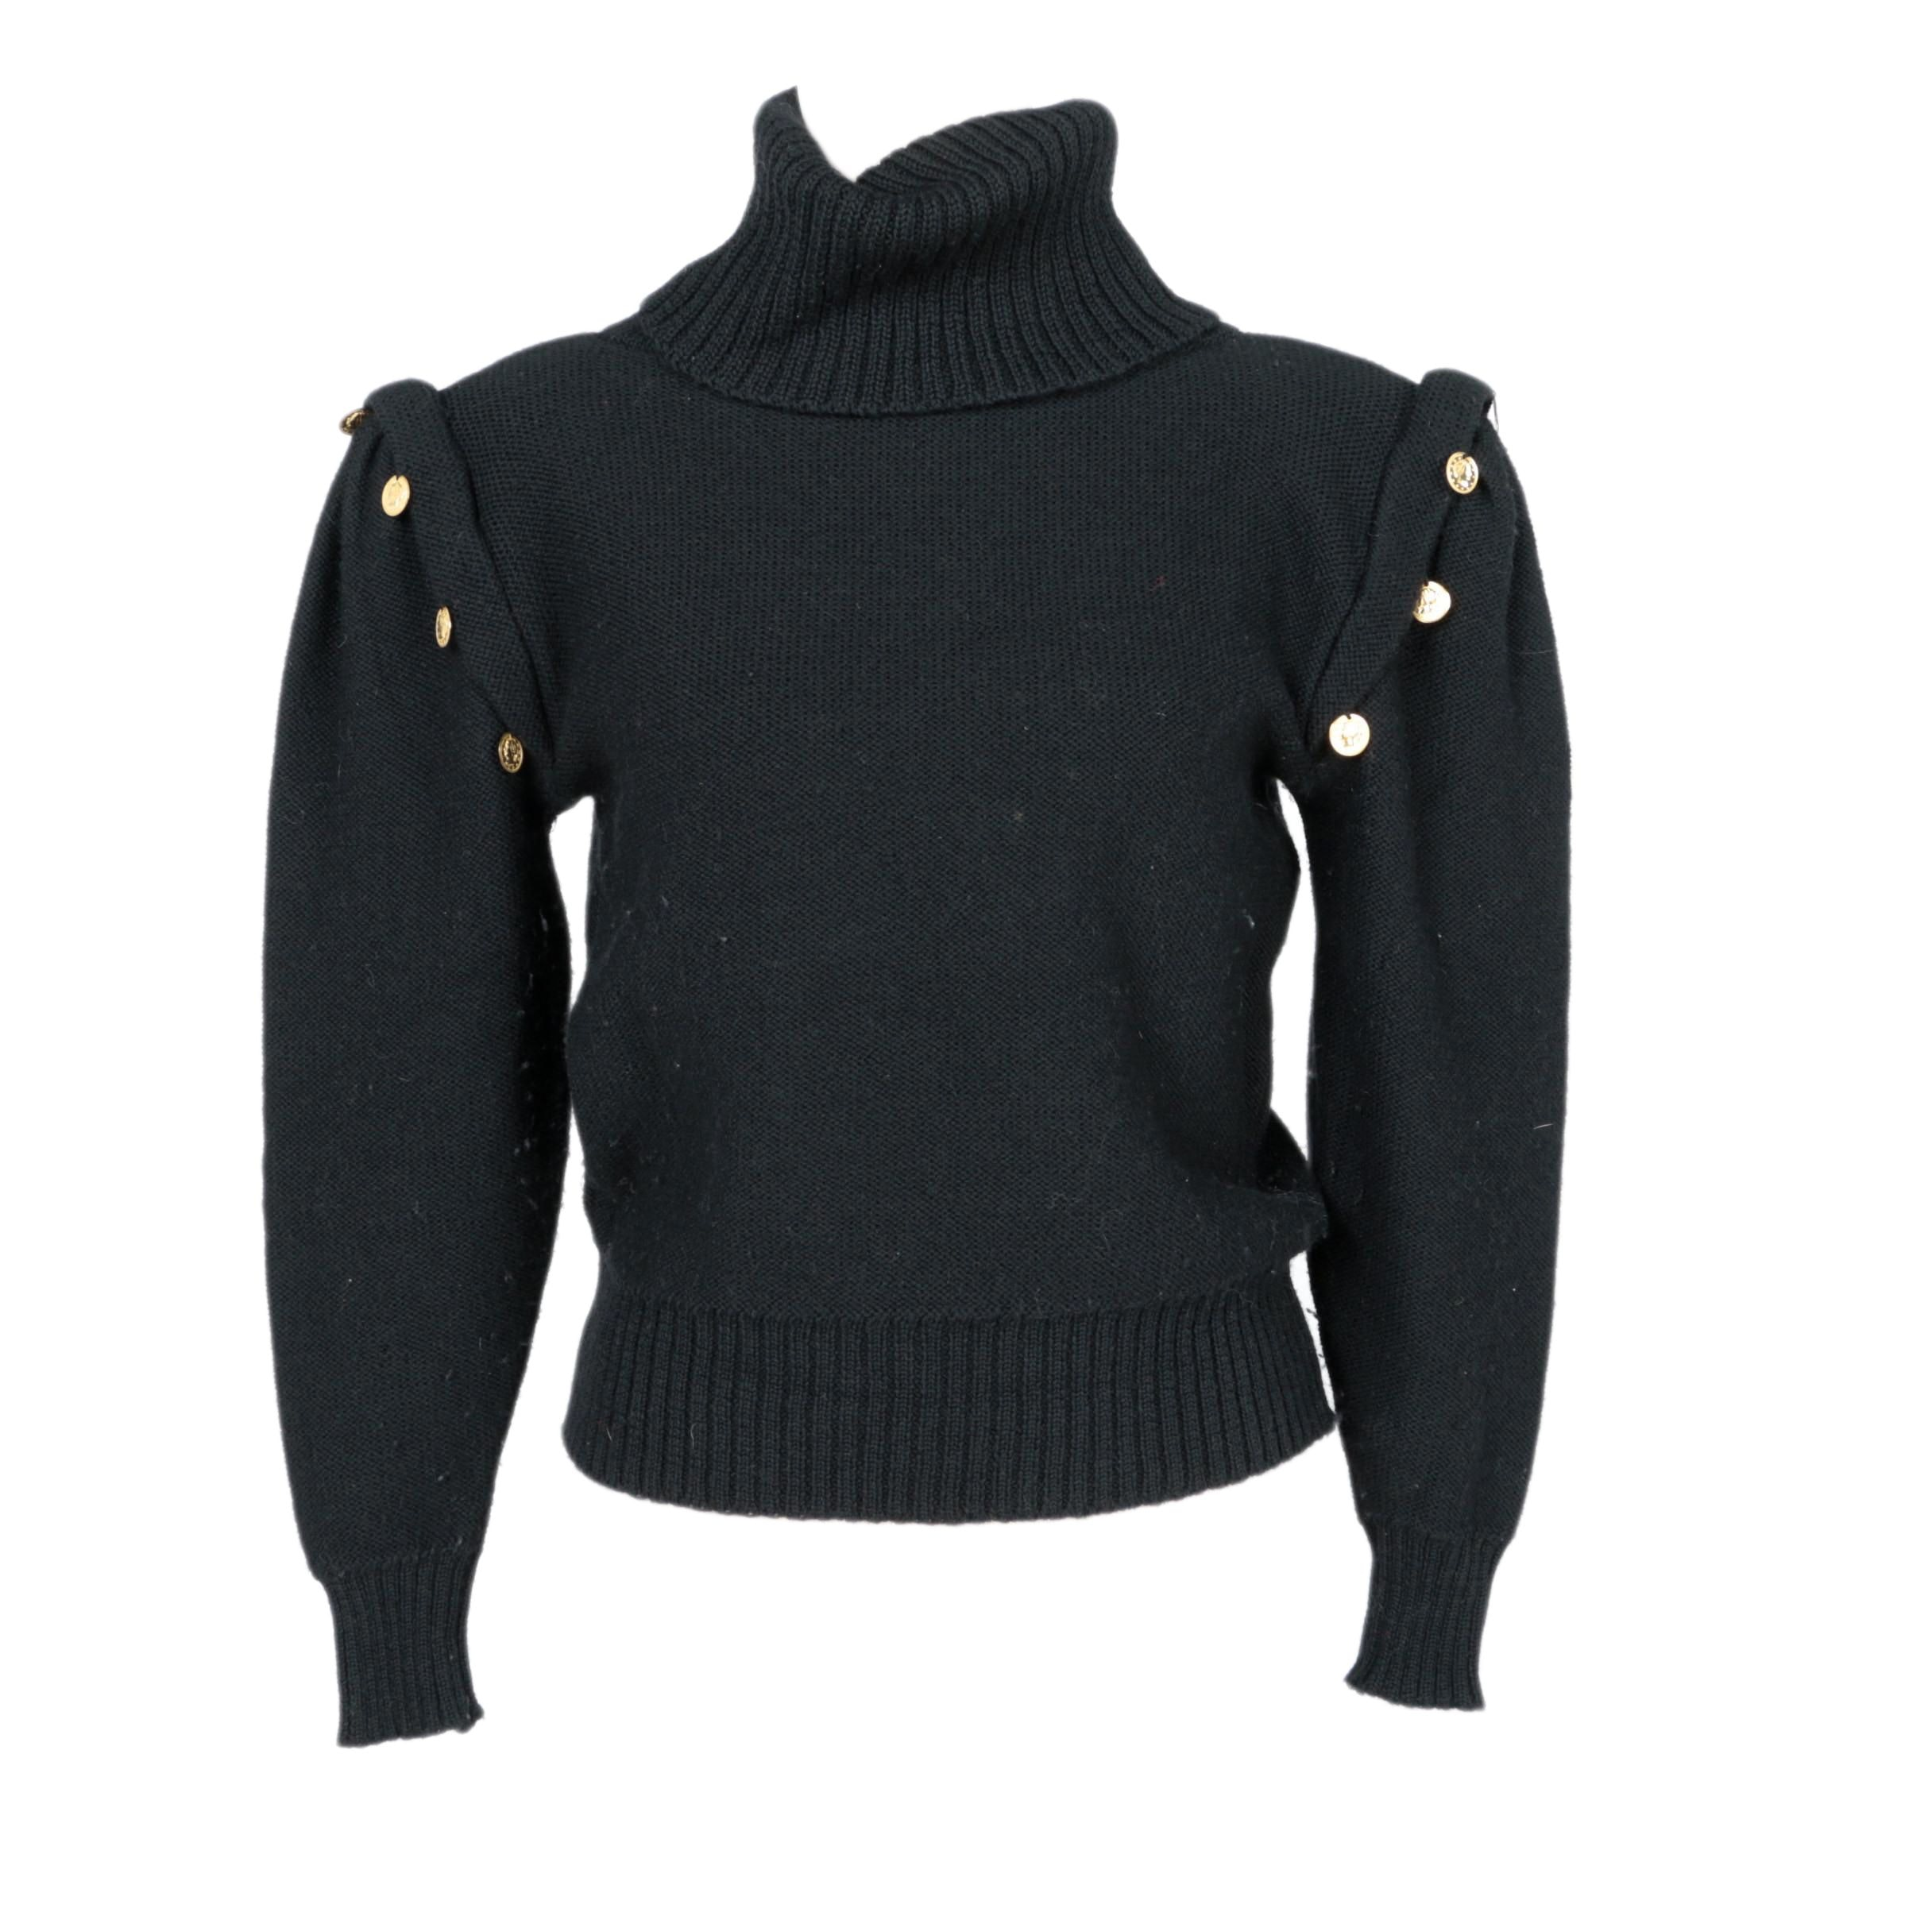 Women's I. Magnin Black Wool Turtleneck Sweater : EBTH